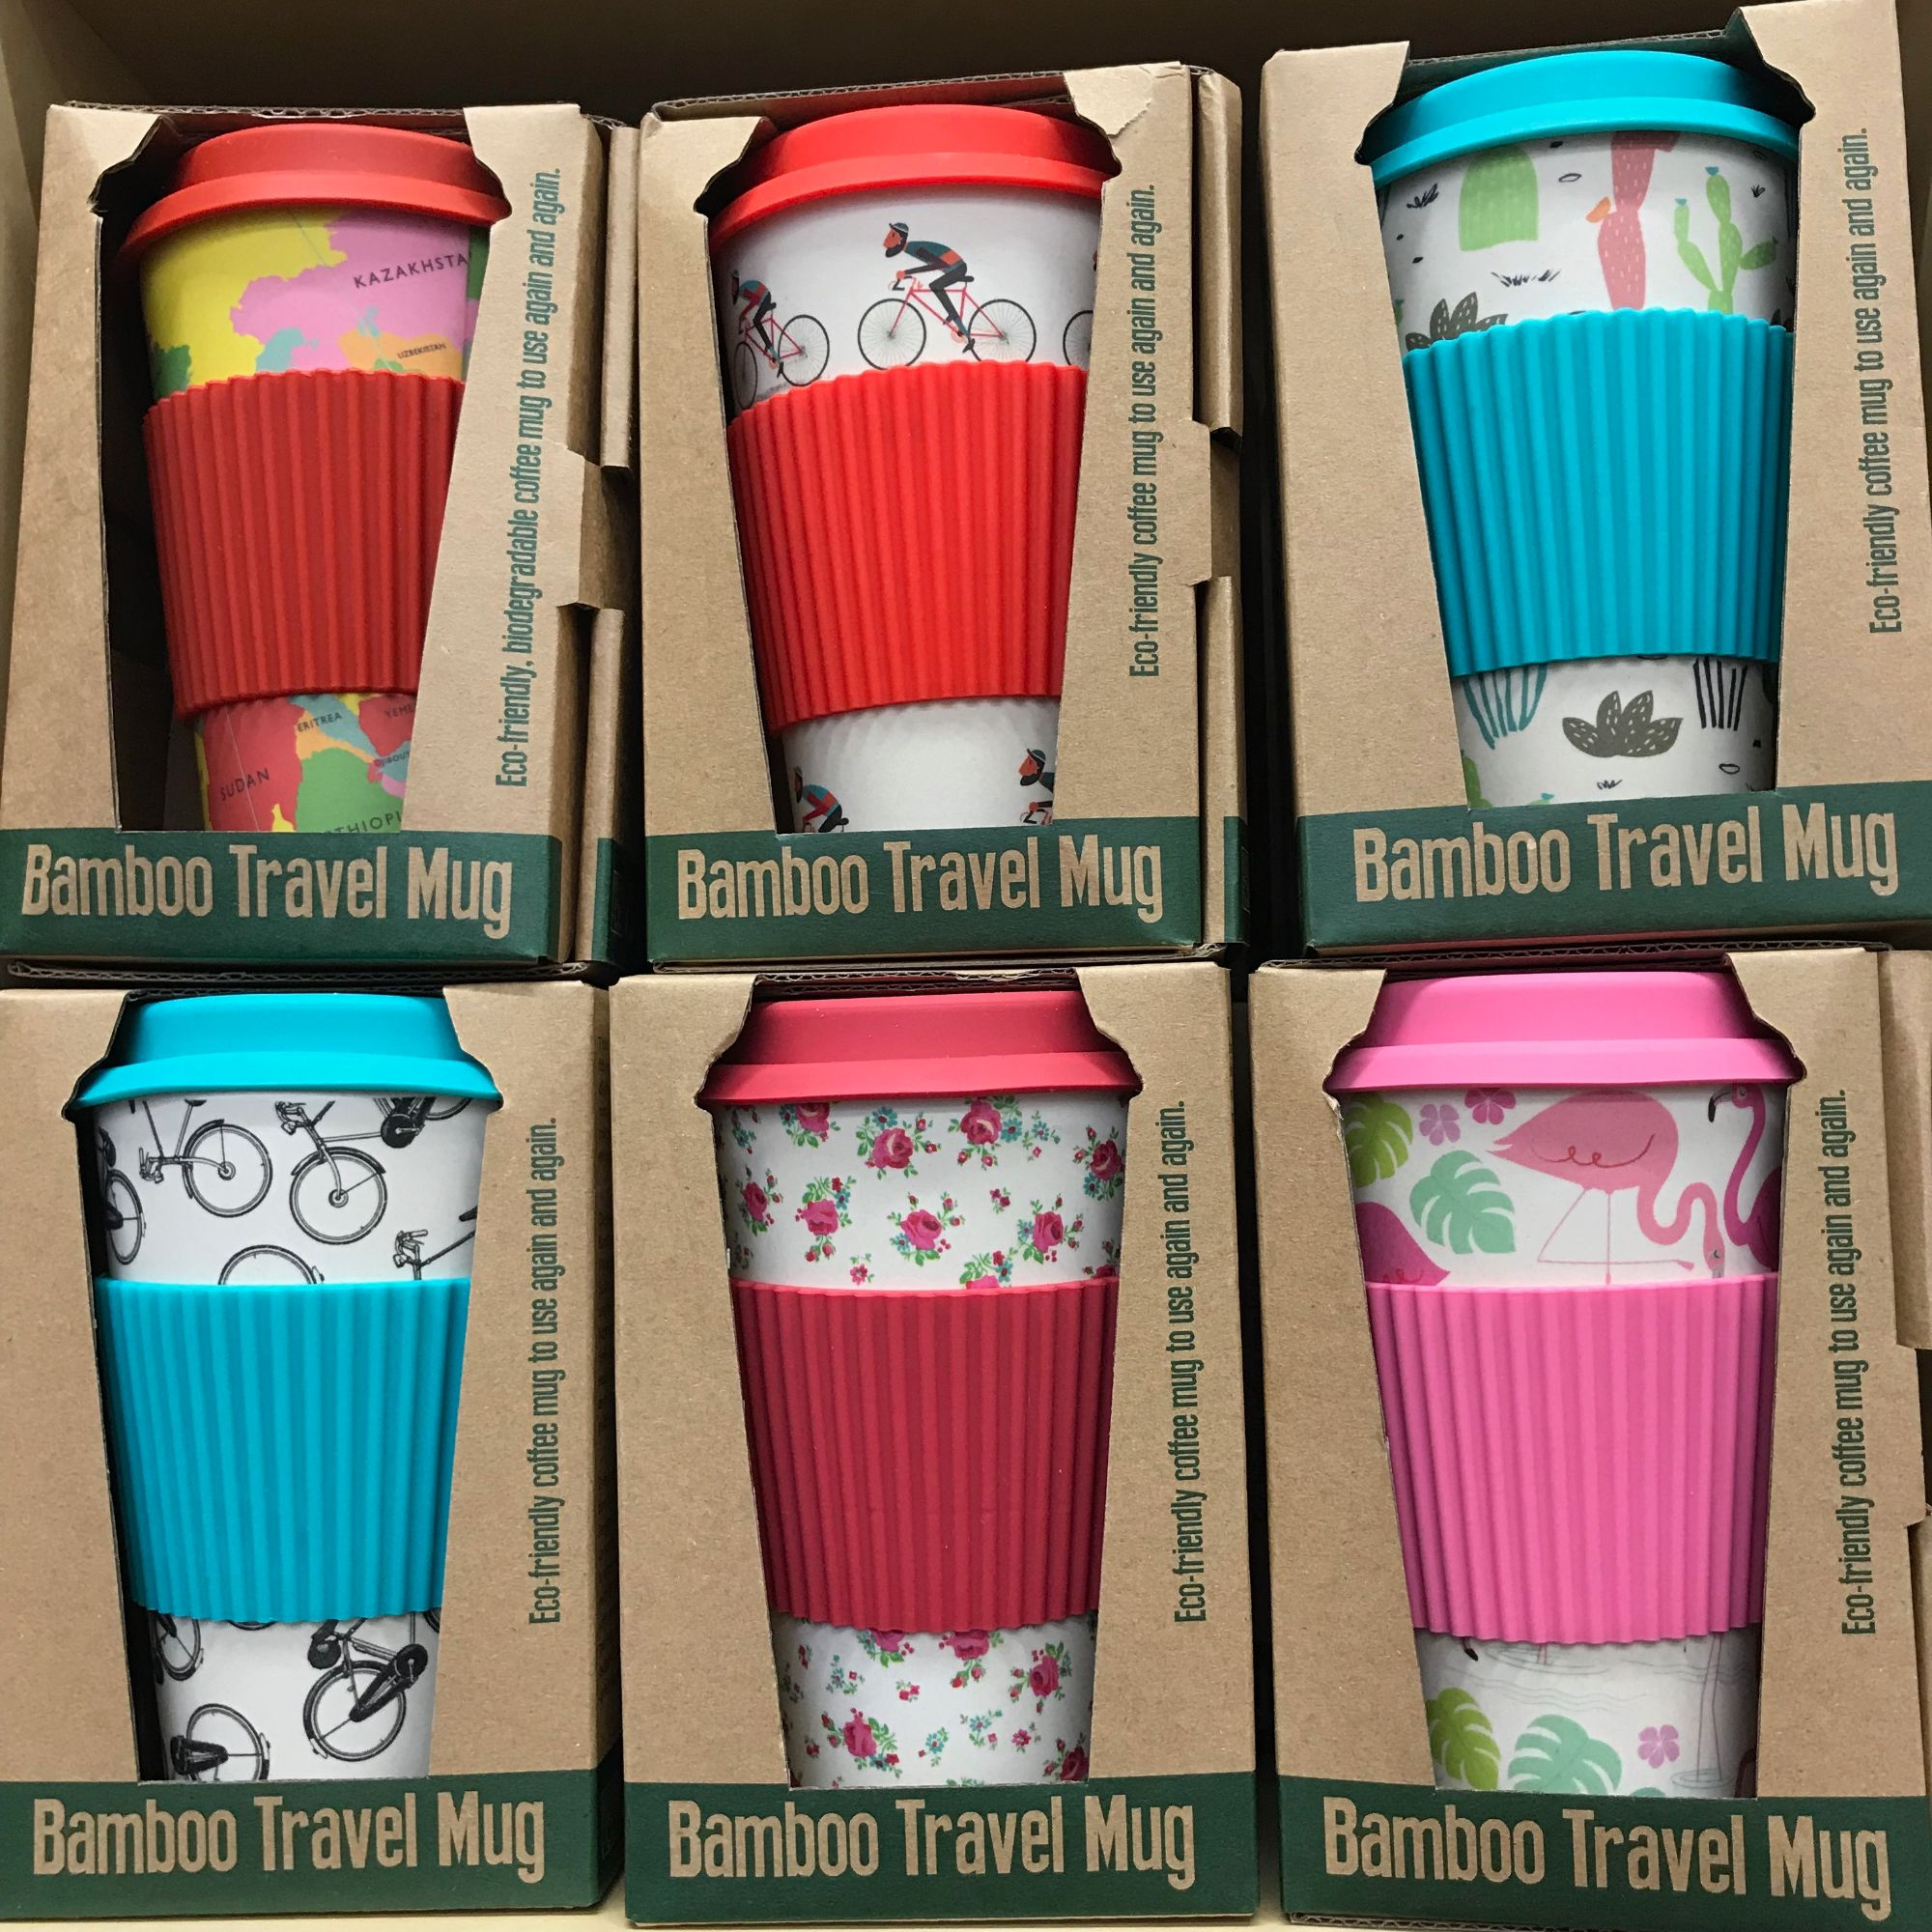 Rex London have many ranges of bamboo eco cups lunch boxes, bags and flasks